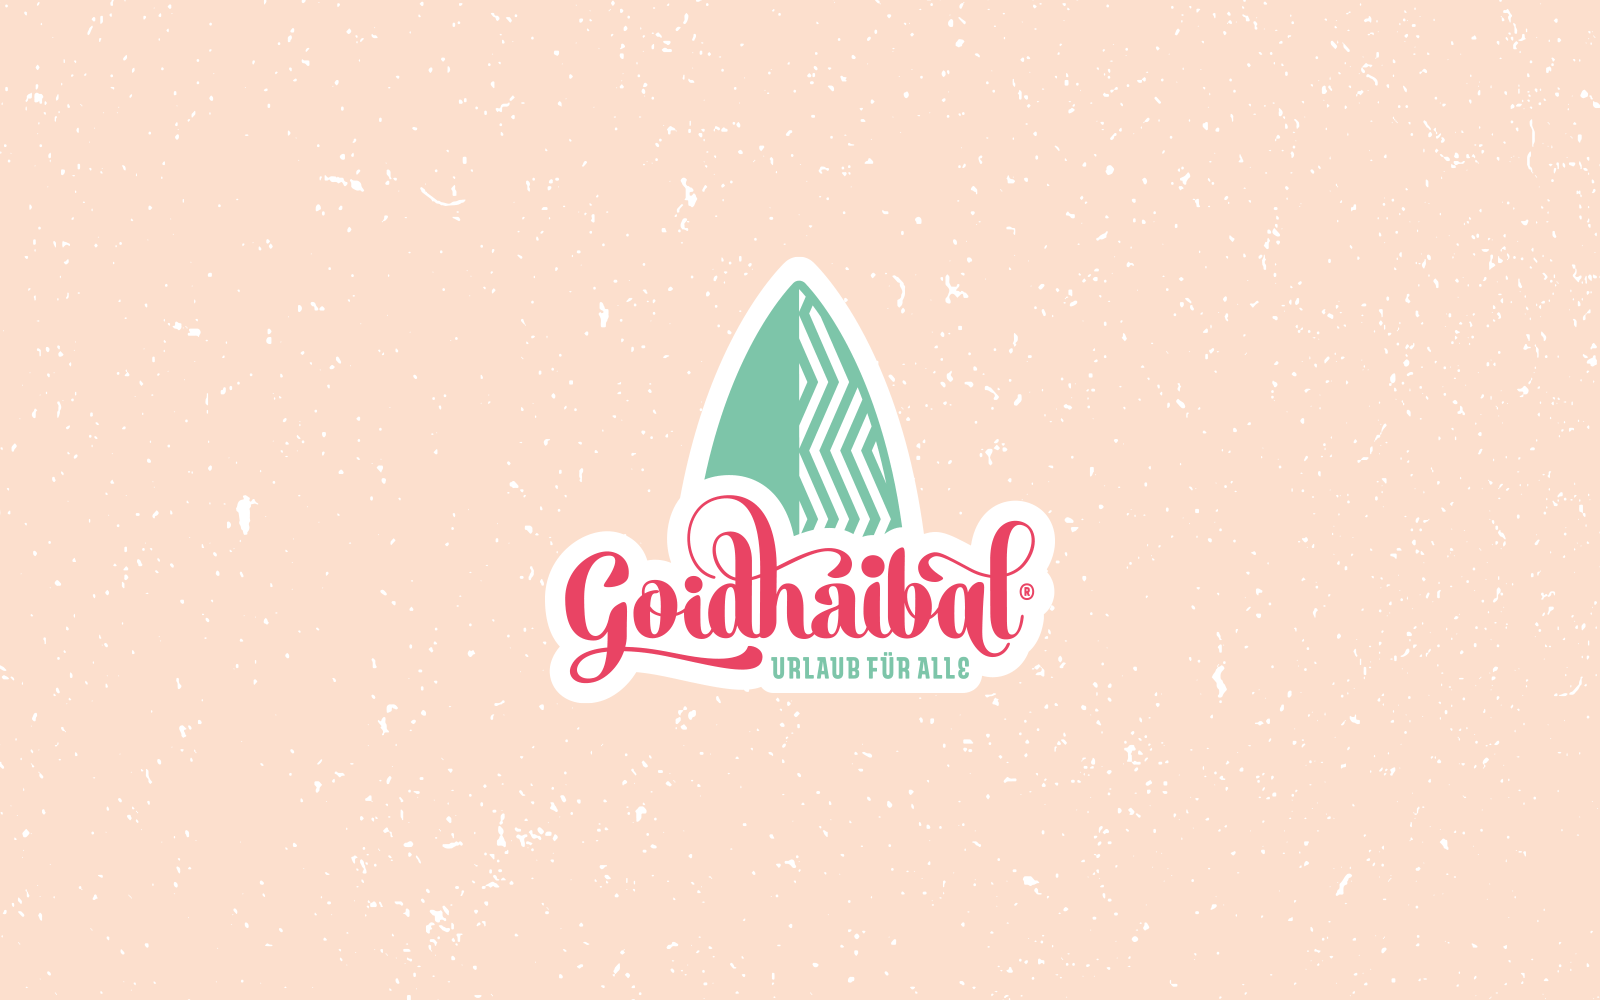 Goidhaibal® – Logo Version 1